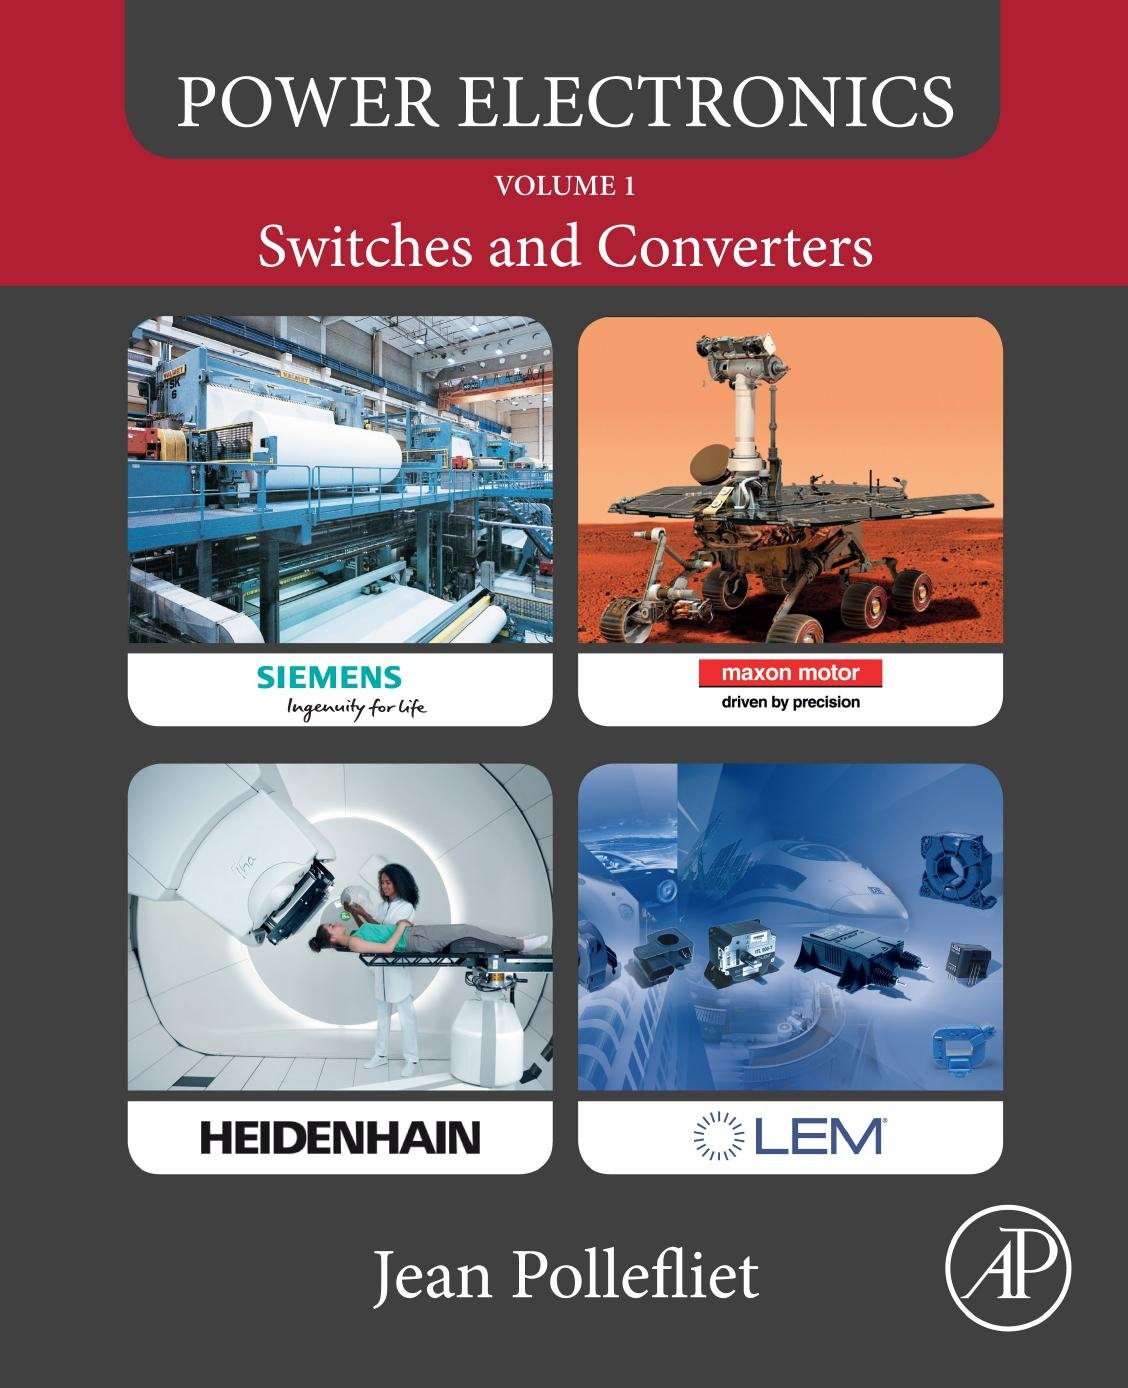 Power Electronics, Volume 1 : Switches and Converters-P2P